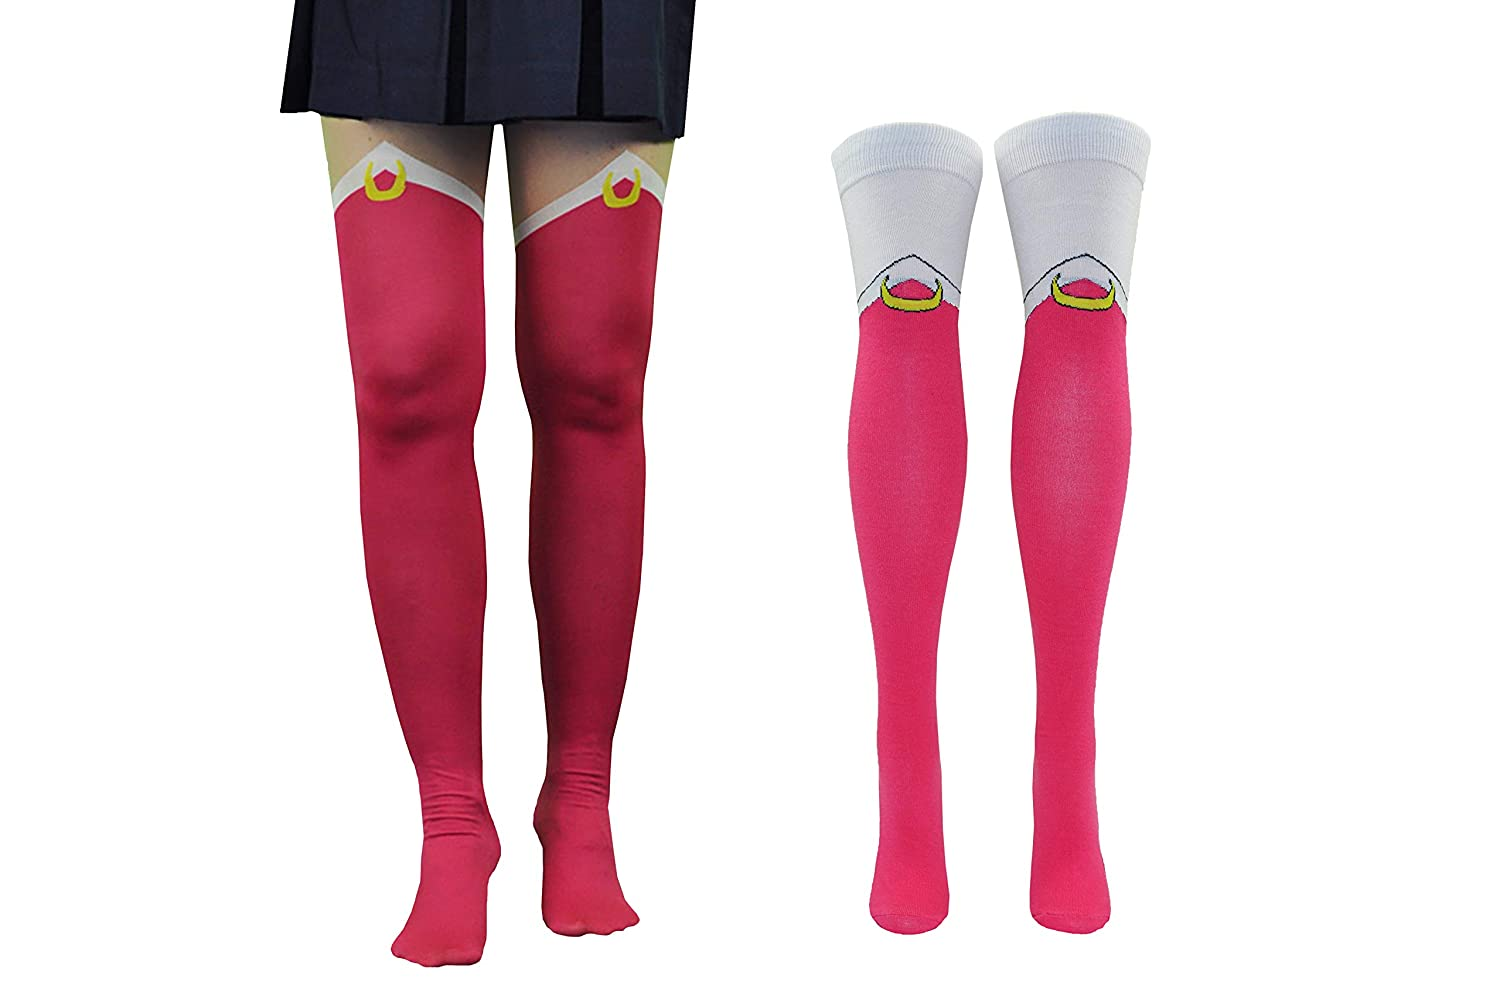 Amazon.com: Sailor Moon - Medias y calcetines para mujer y ...